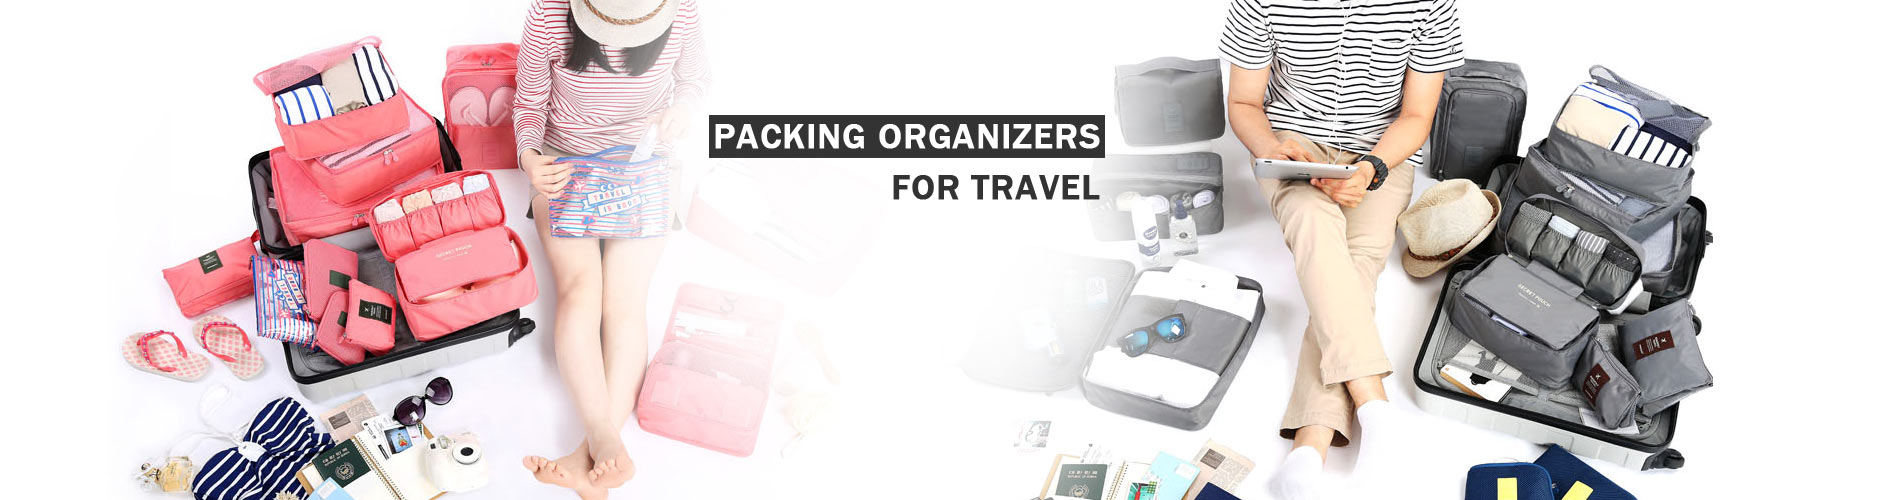 fallindesign travel packing organizers